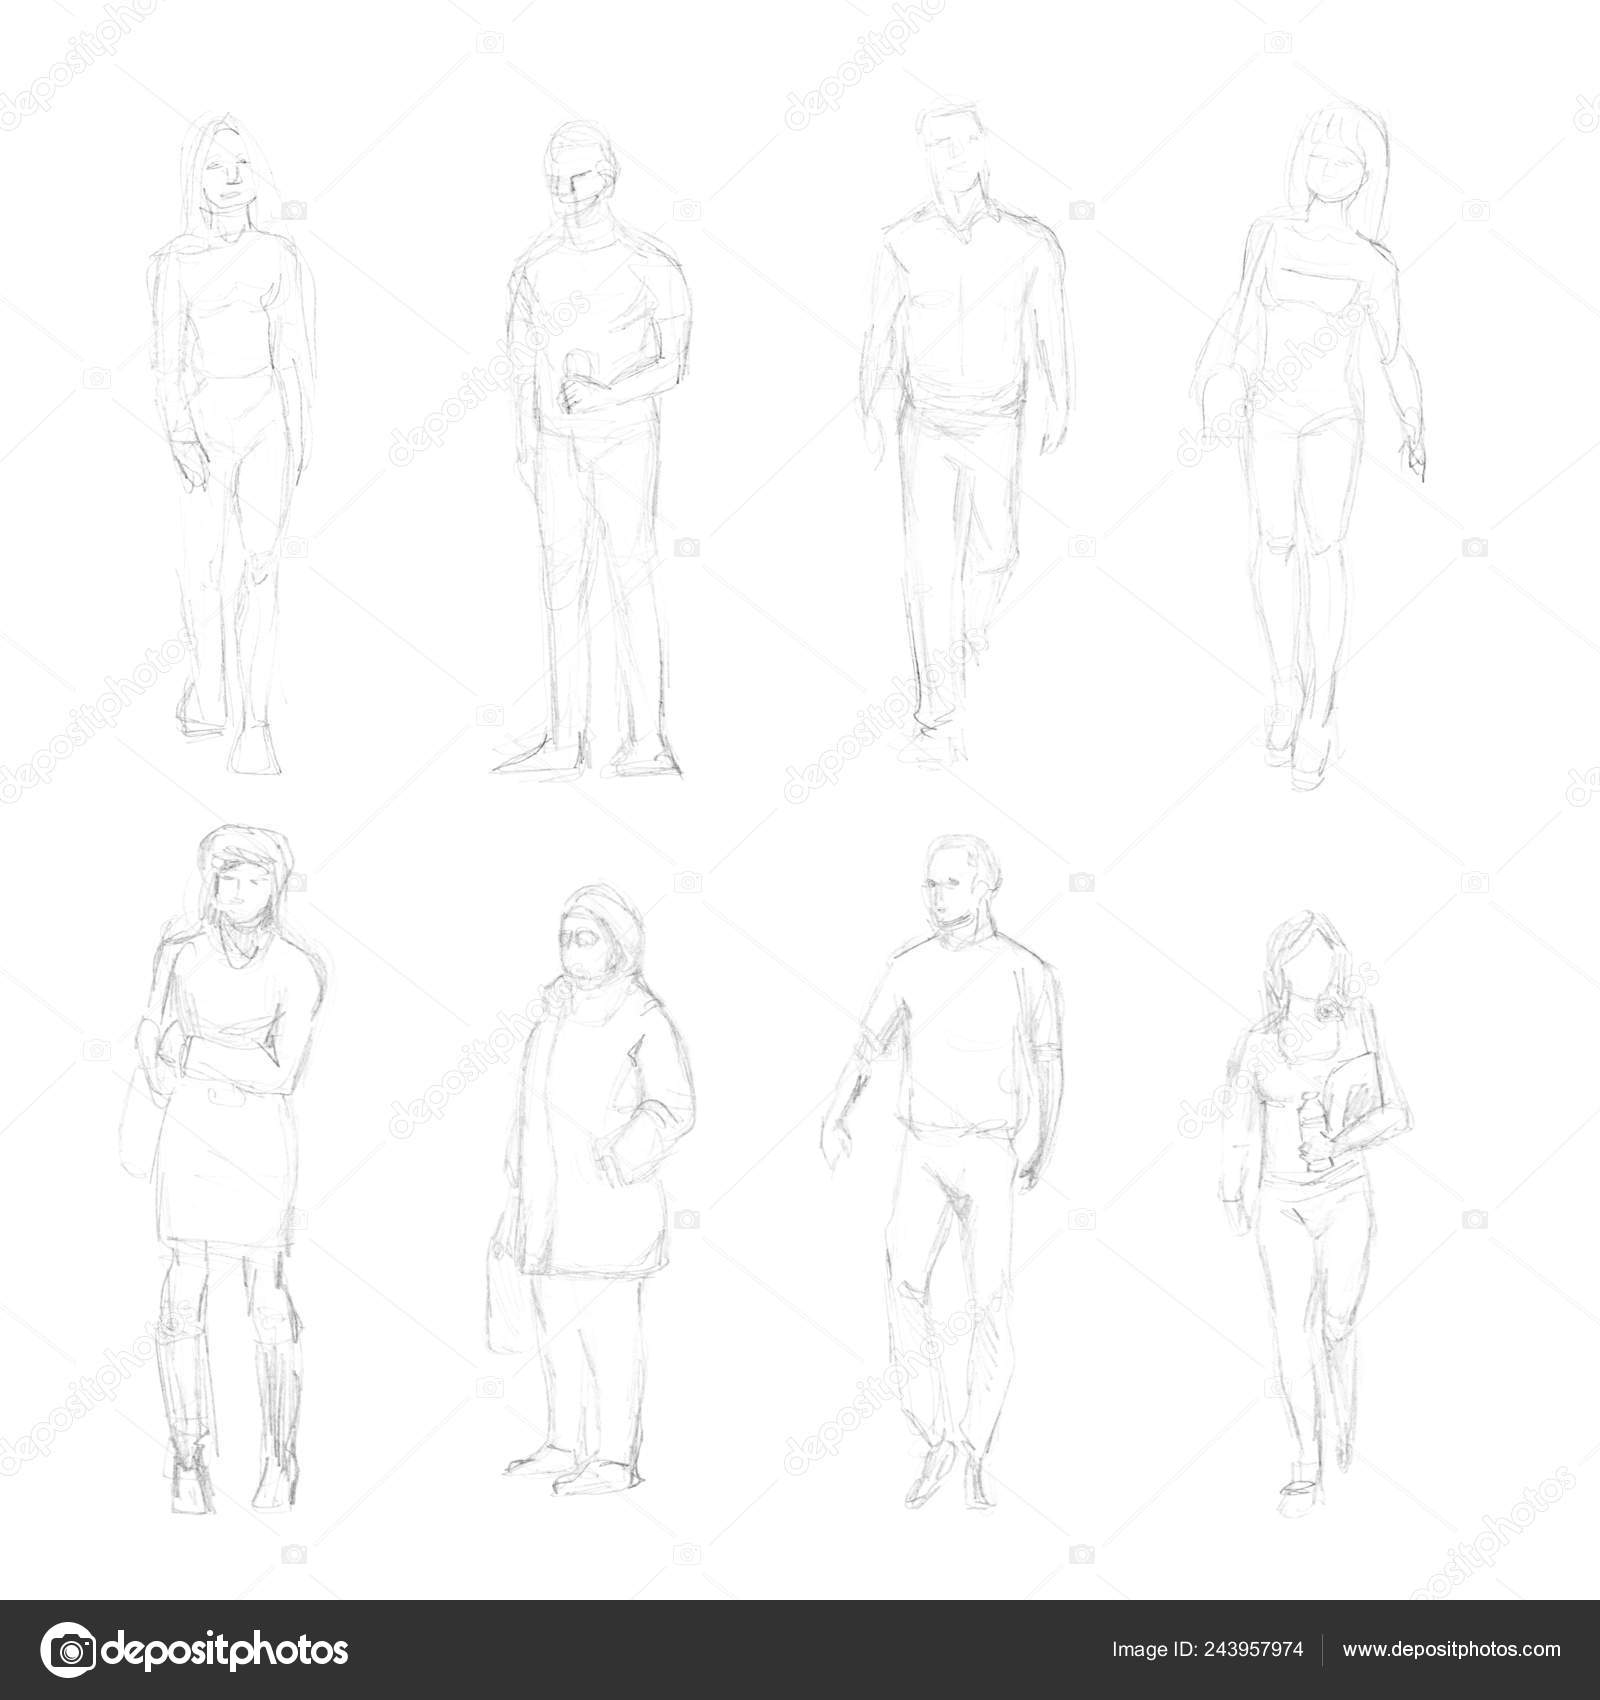 Black and white outlines of the outline with a simple pencil drawings of human figures for women and men without faces in various poses sketches set